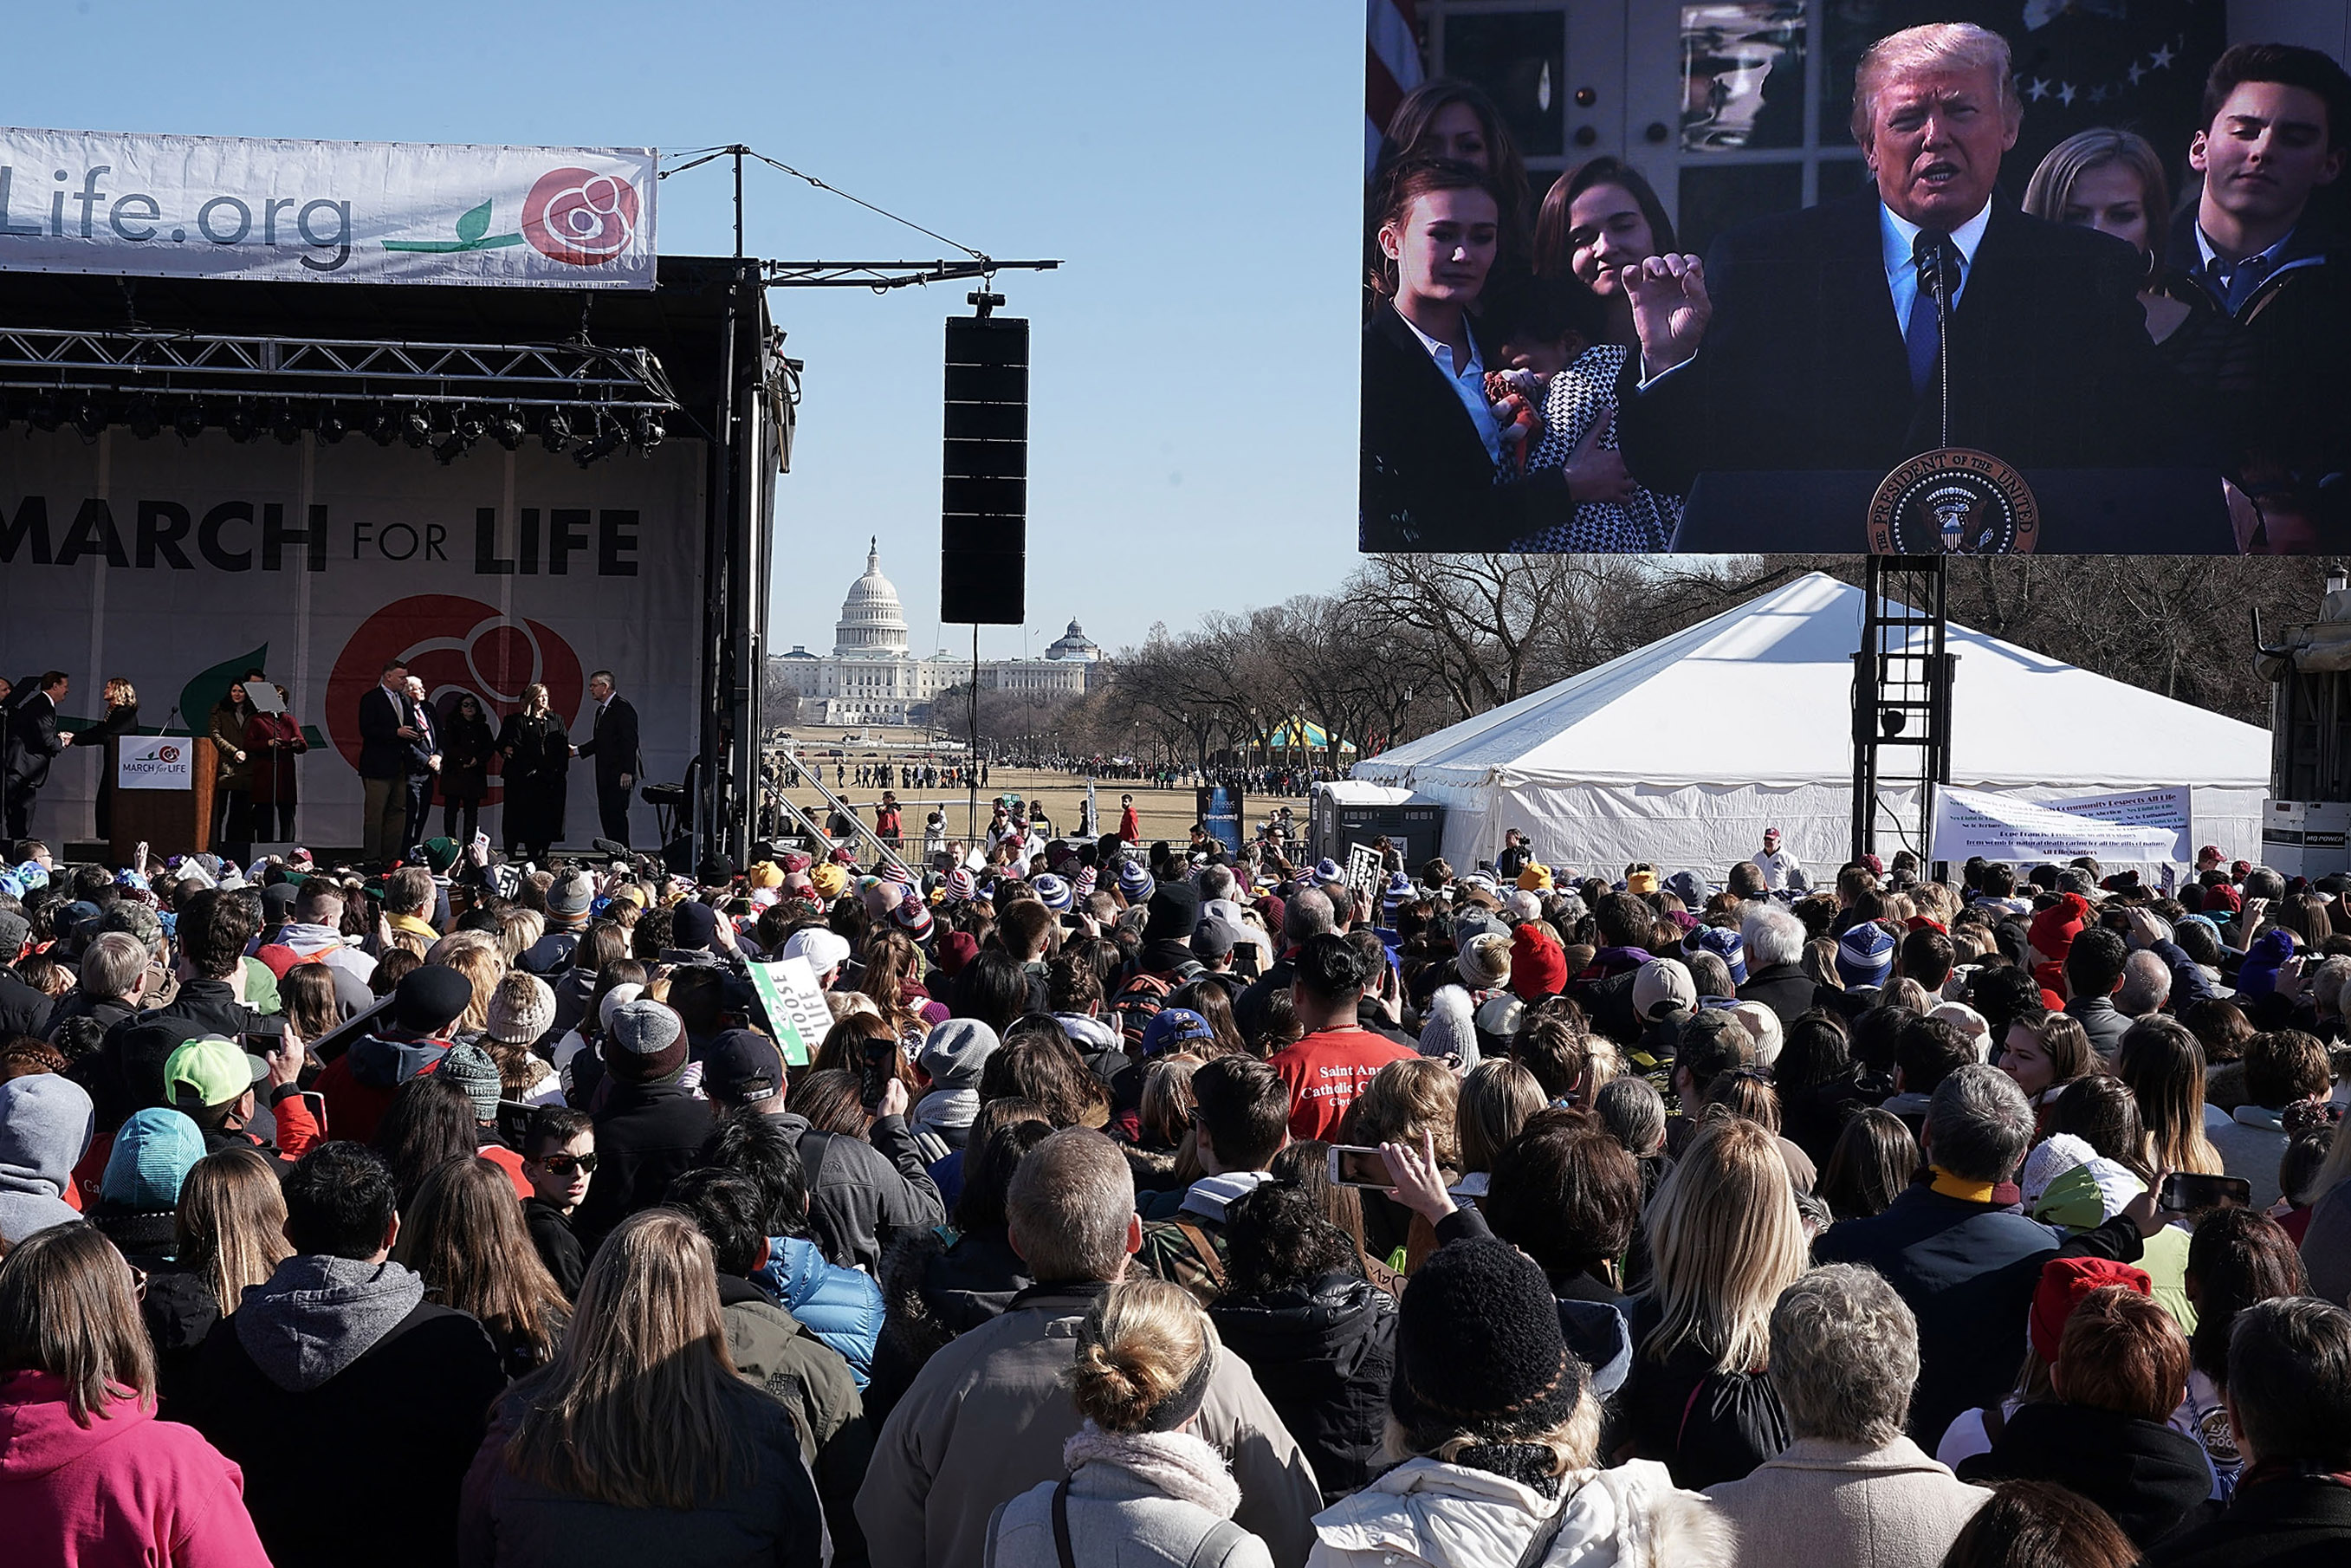 Pro-life activists watch U.S. President Donald Trump giving remarks from the Rose Garden of the White House on a jumbotron during a rally at the National Mall prior to the 2018 March for Life on Jan. 19, 2018, in Washington, DC